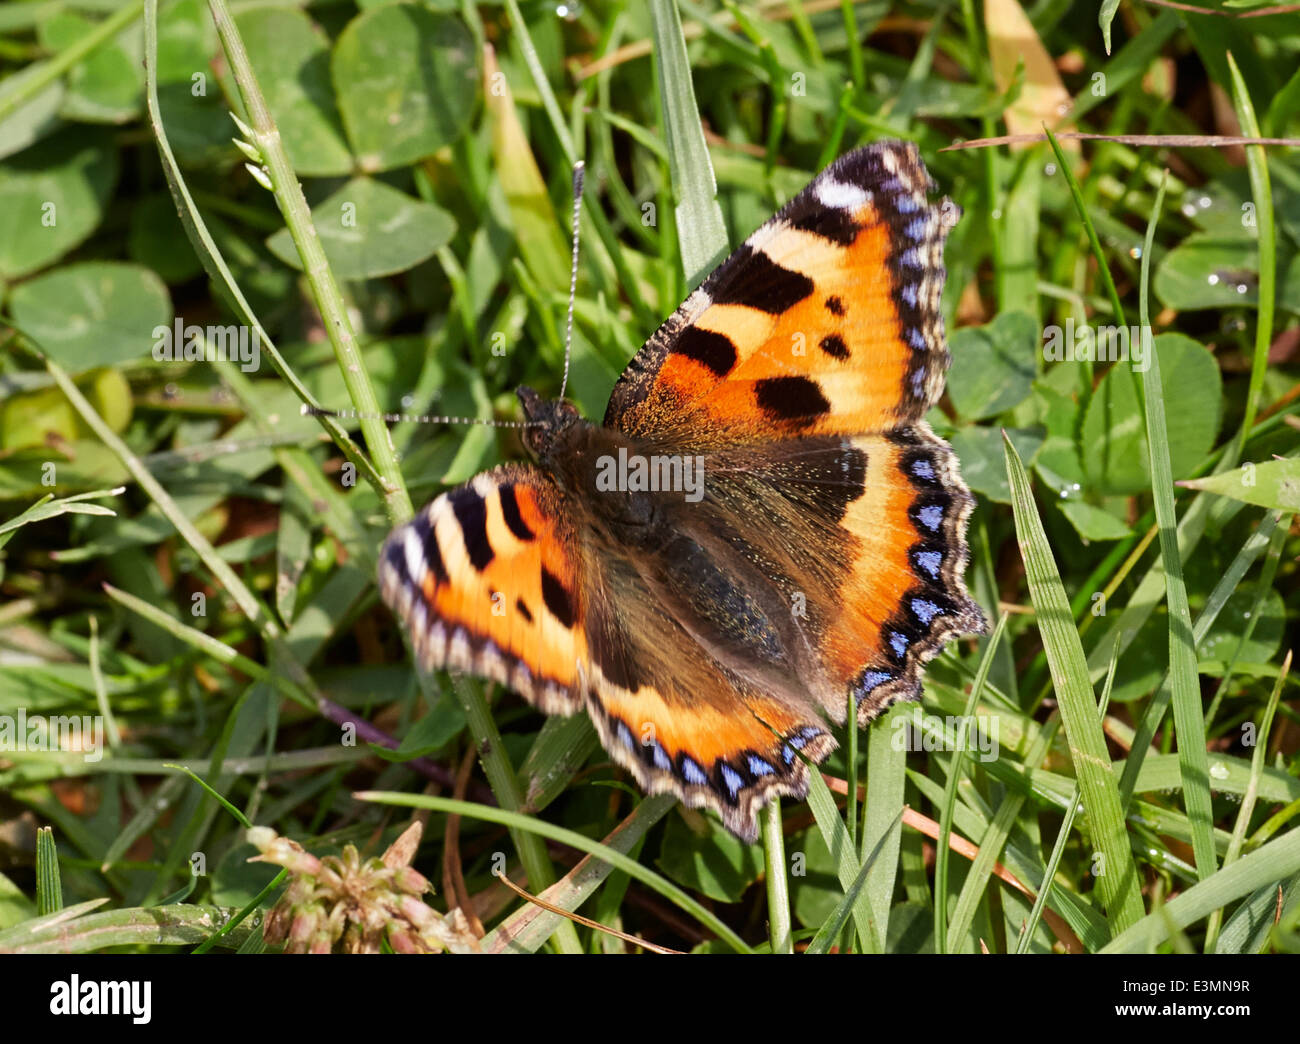 Small Tortoiseshell butterfly. Mitcham Common, Surrey, England. - Stock Image